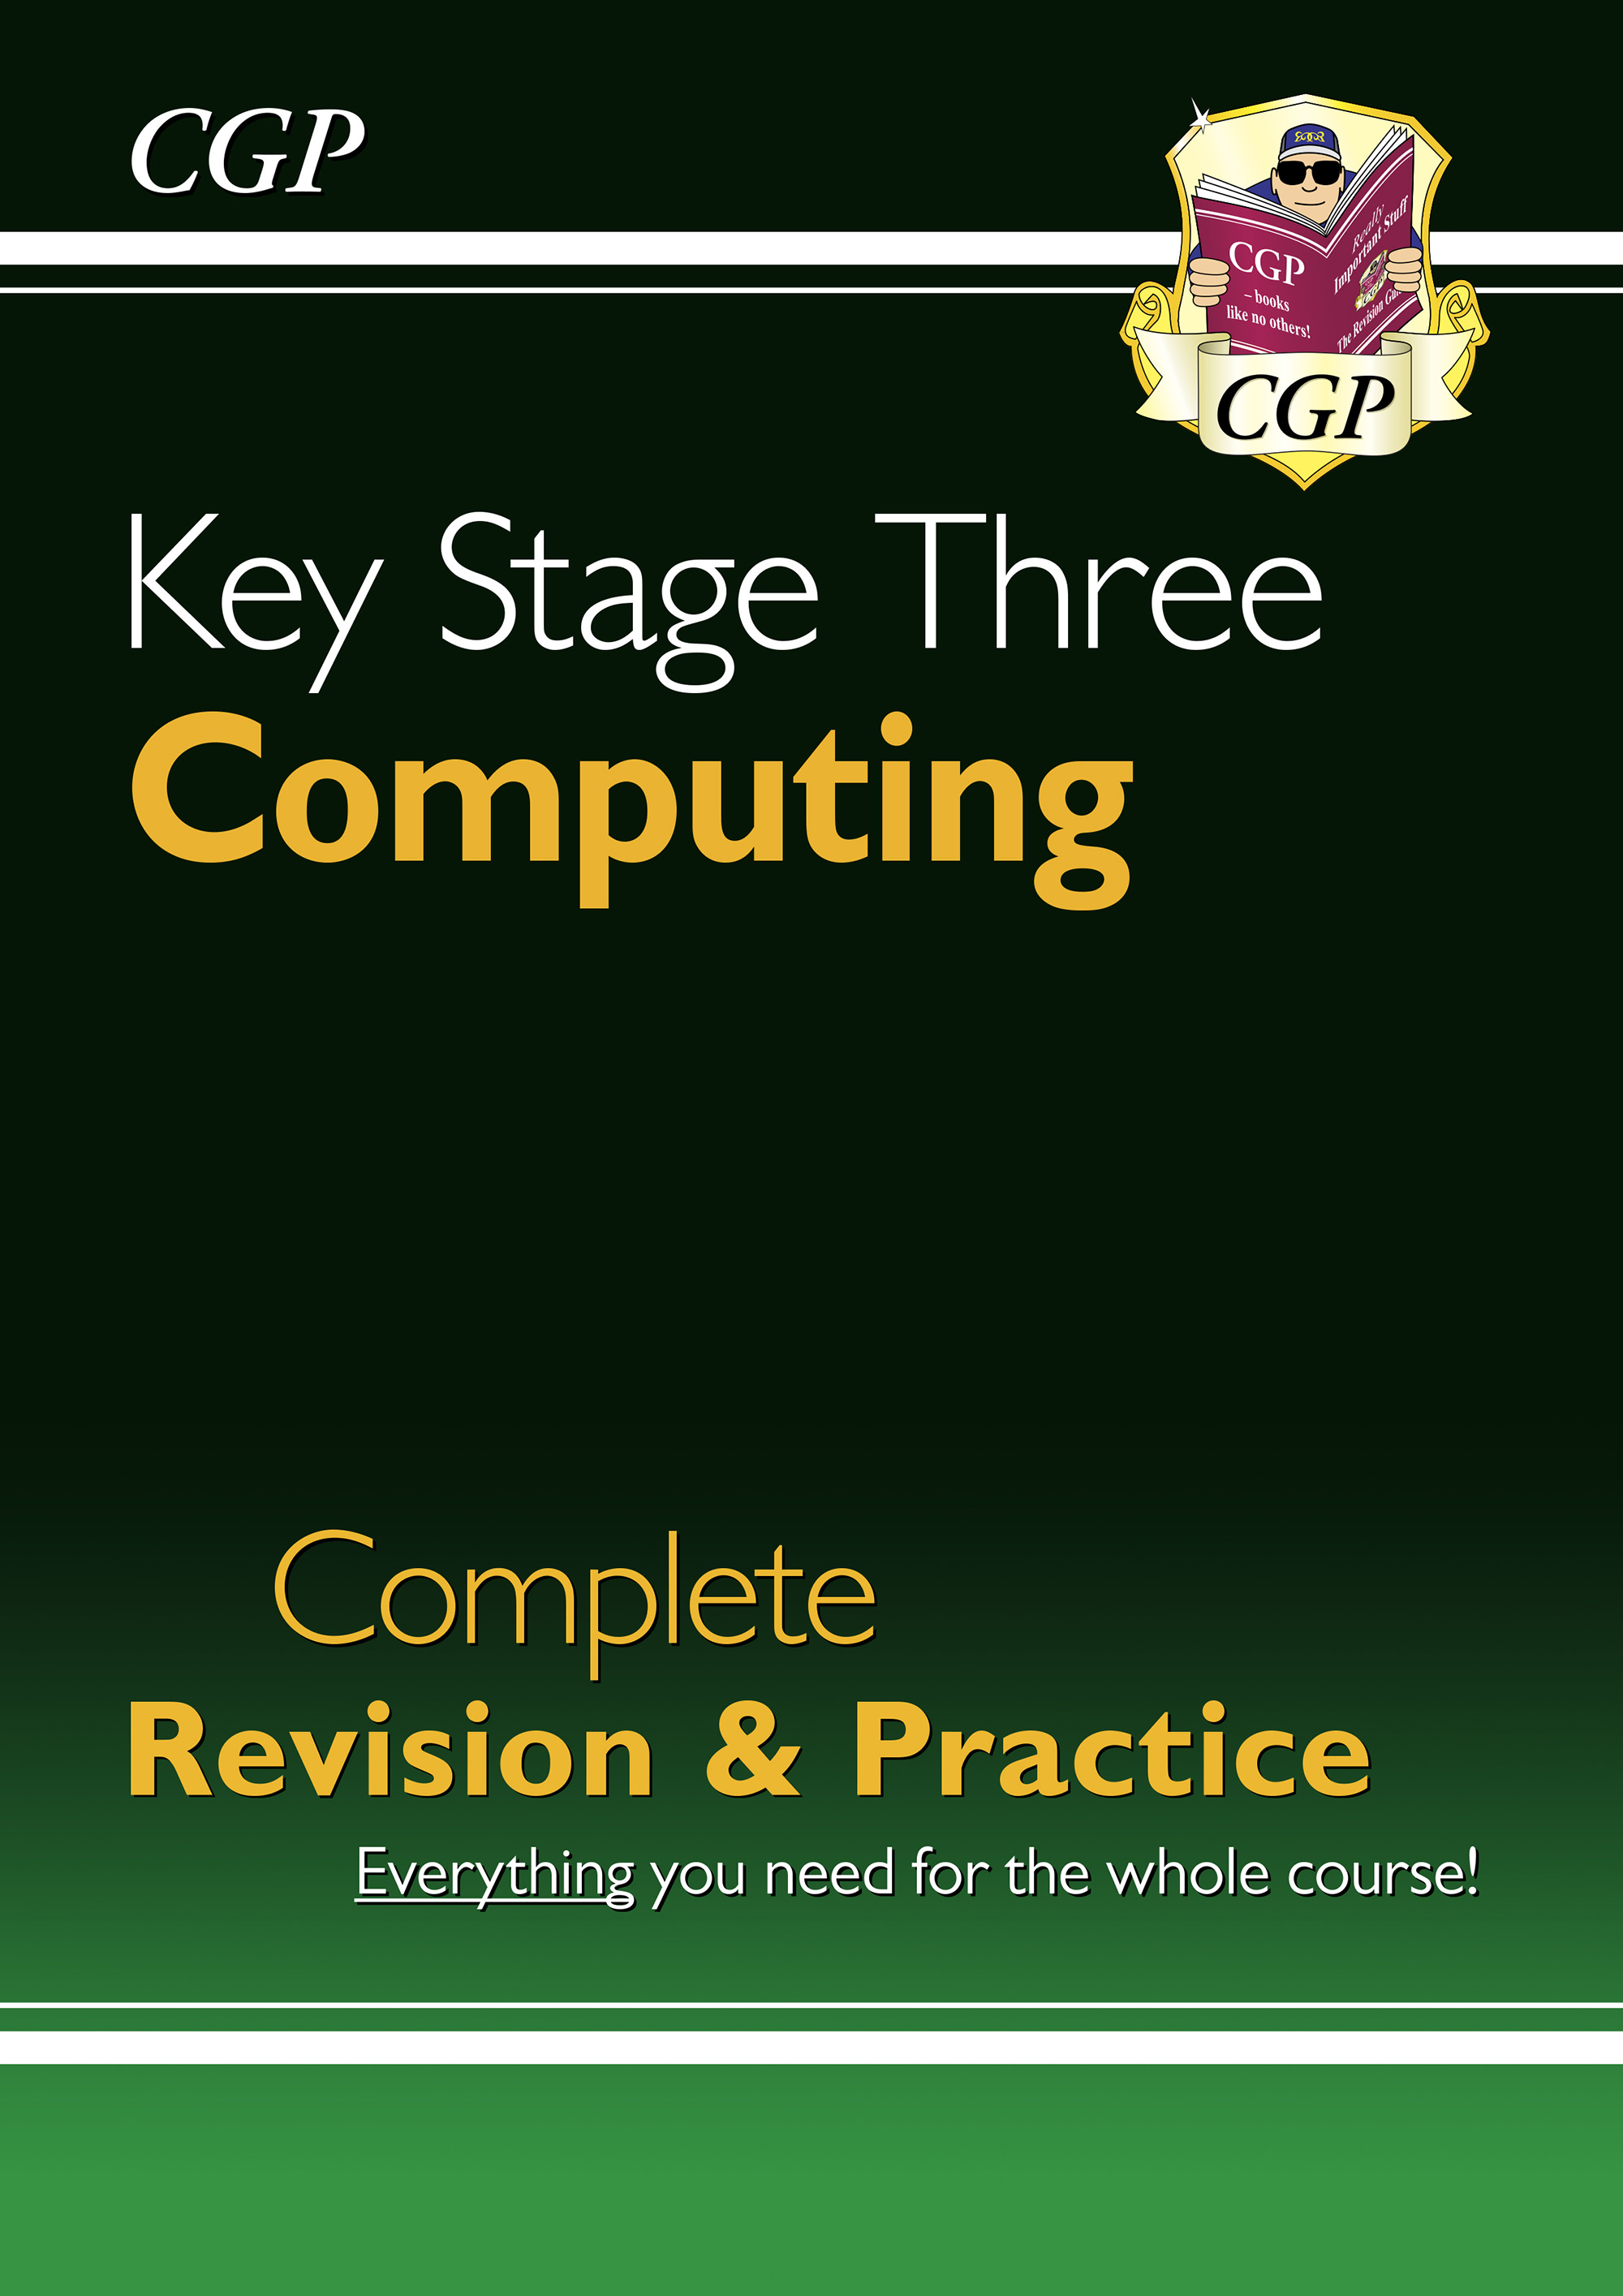 COS31DK - New KS3 Computing Complete Revision & Practice